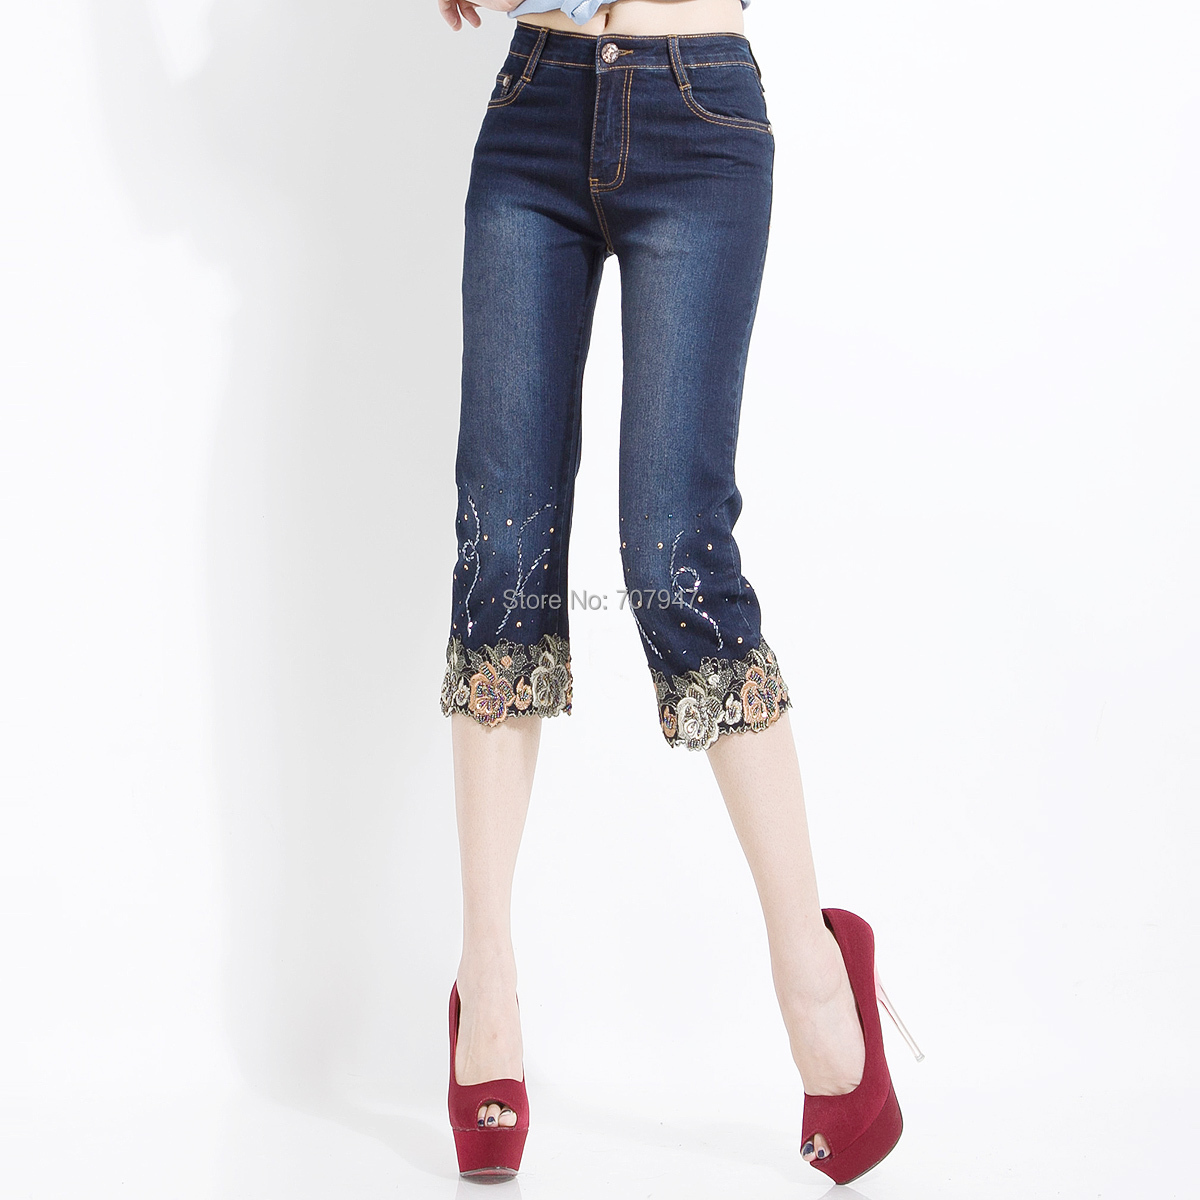 Cheap Women Jeans Wholesale - Jeans Am